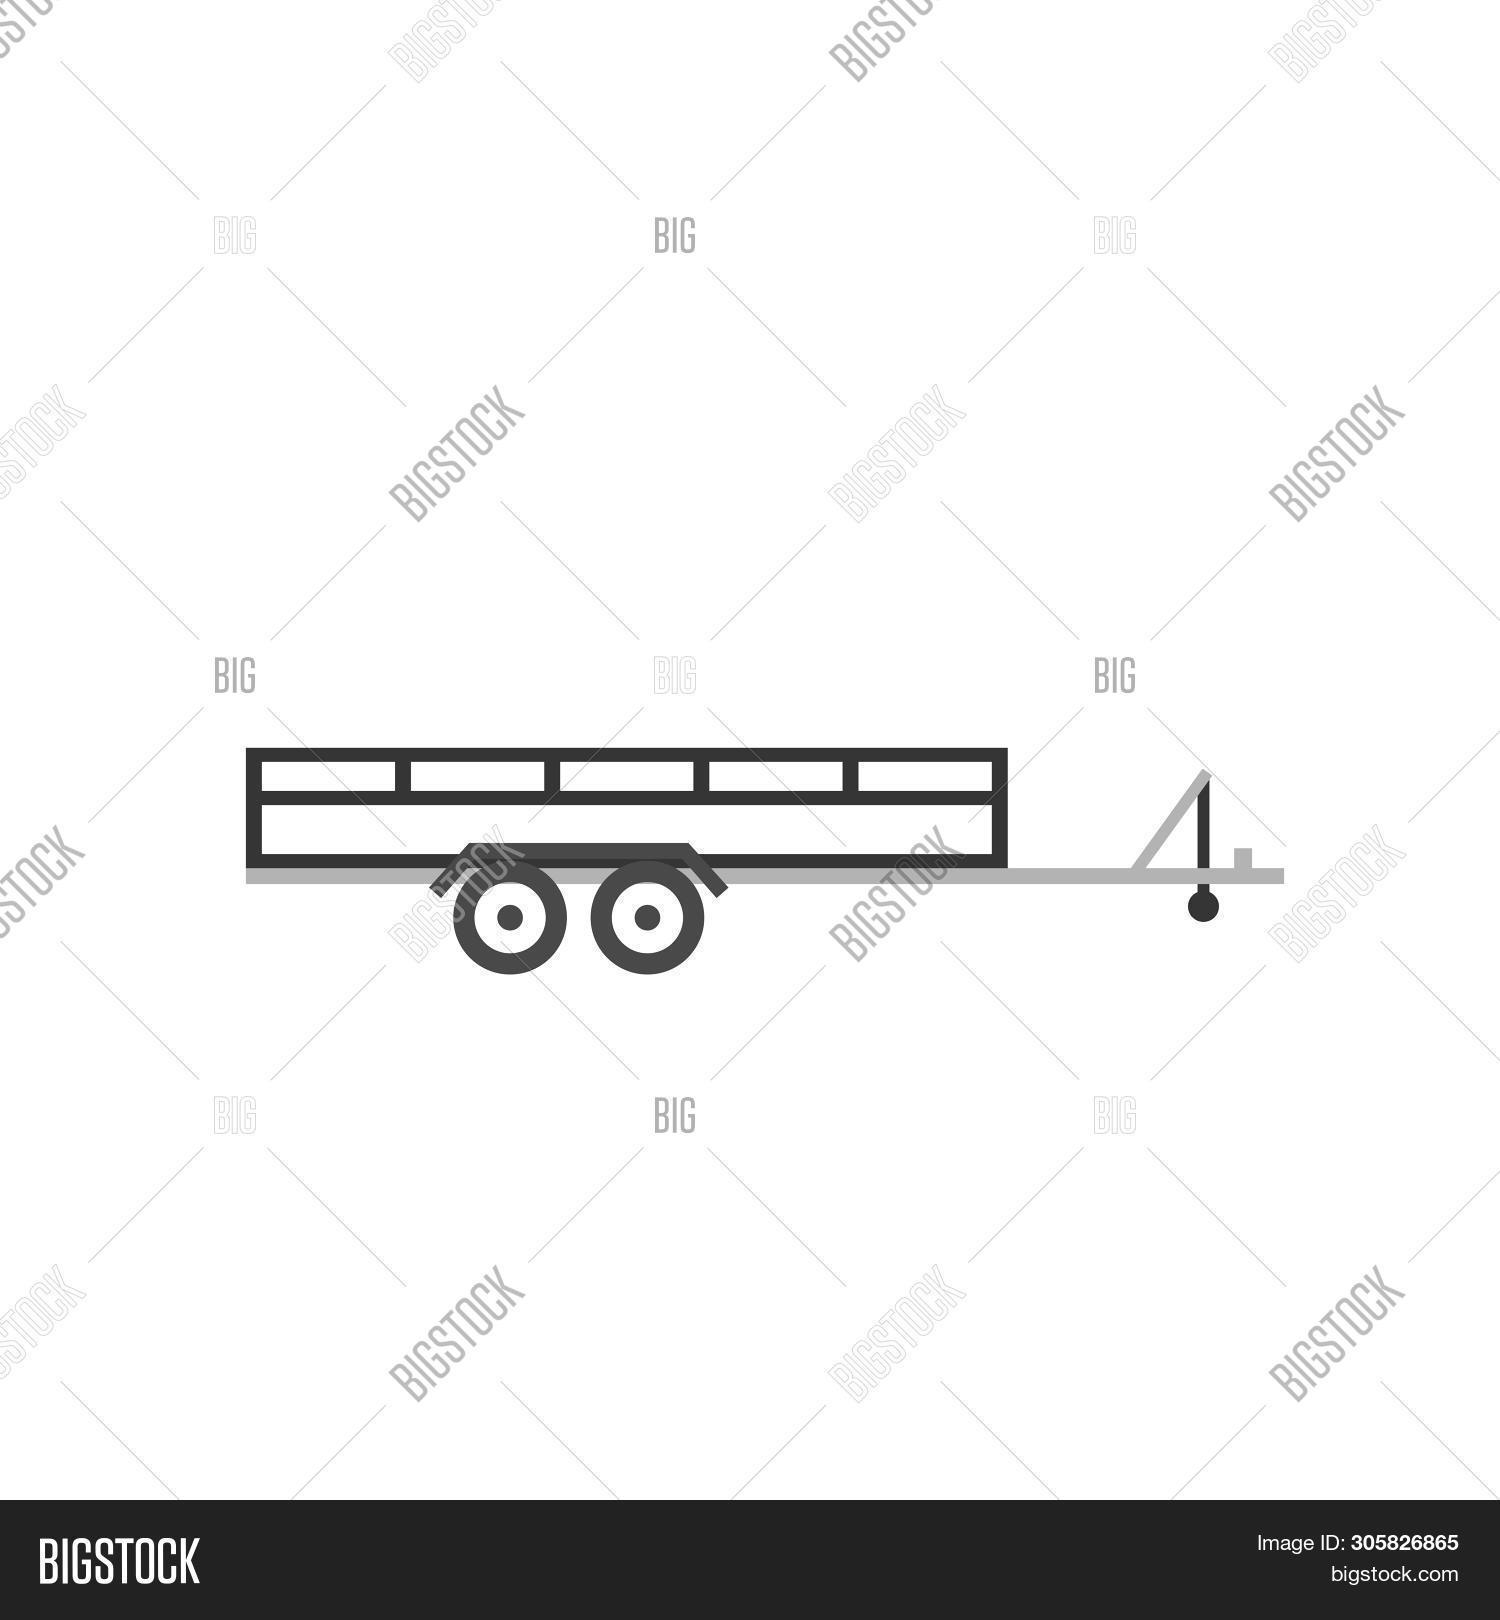 Large Open Car Trailer Image & Photo (Free Trial) | Bigstock